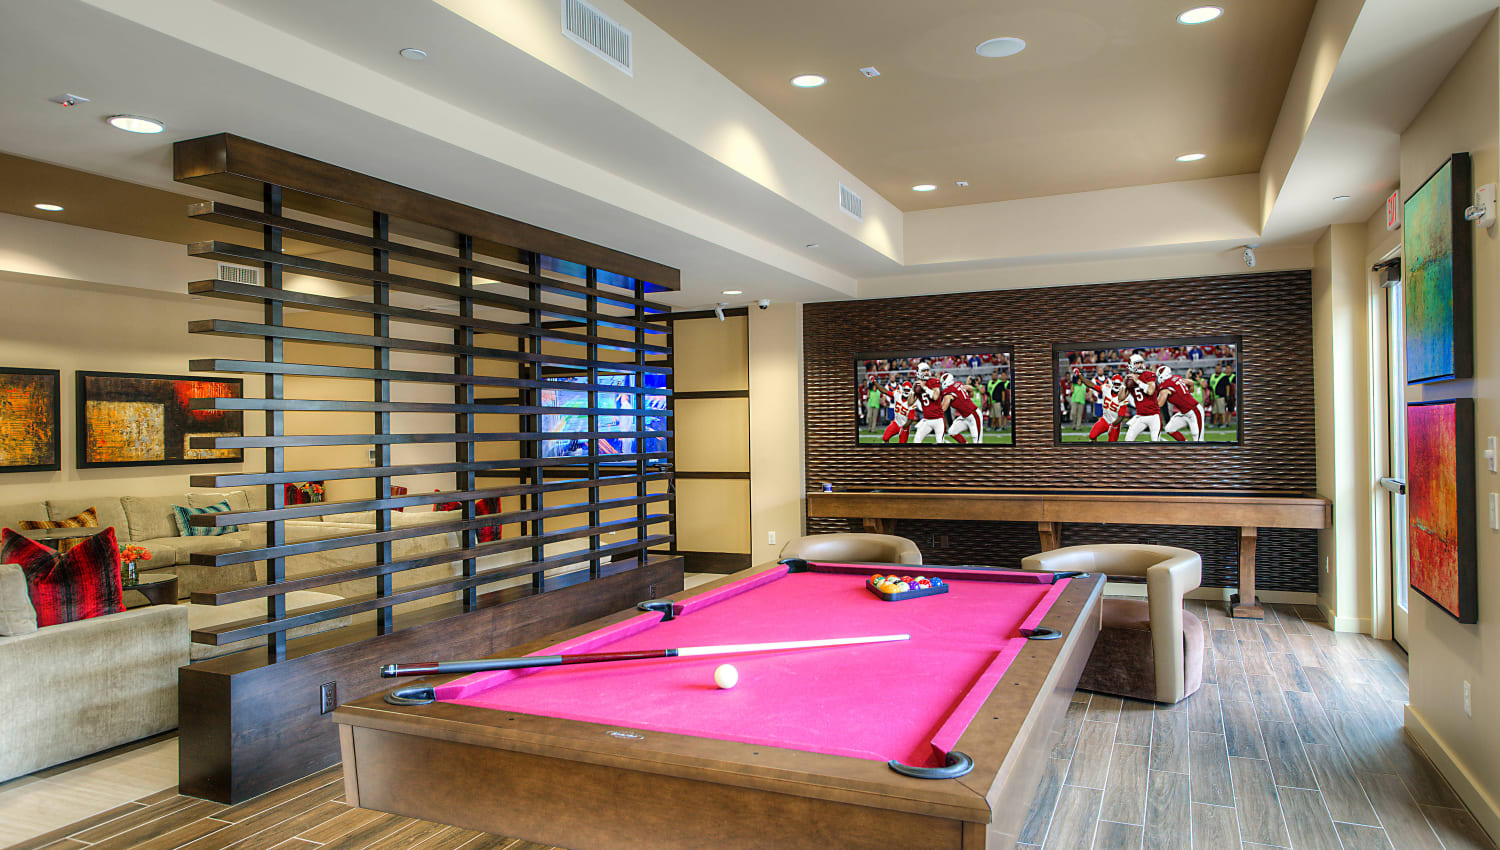 Billiards table in the clubhouse game room at Vistara at SanTan Village in Gilbert, Arizona